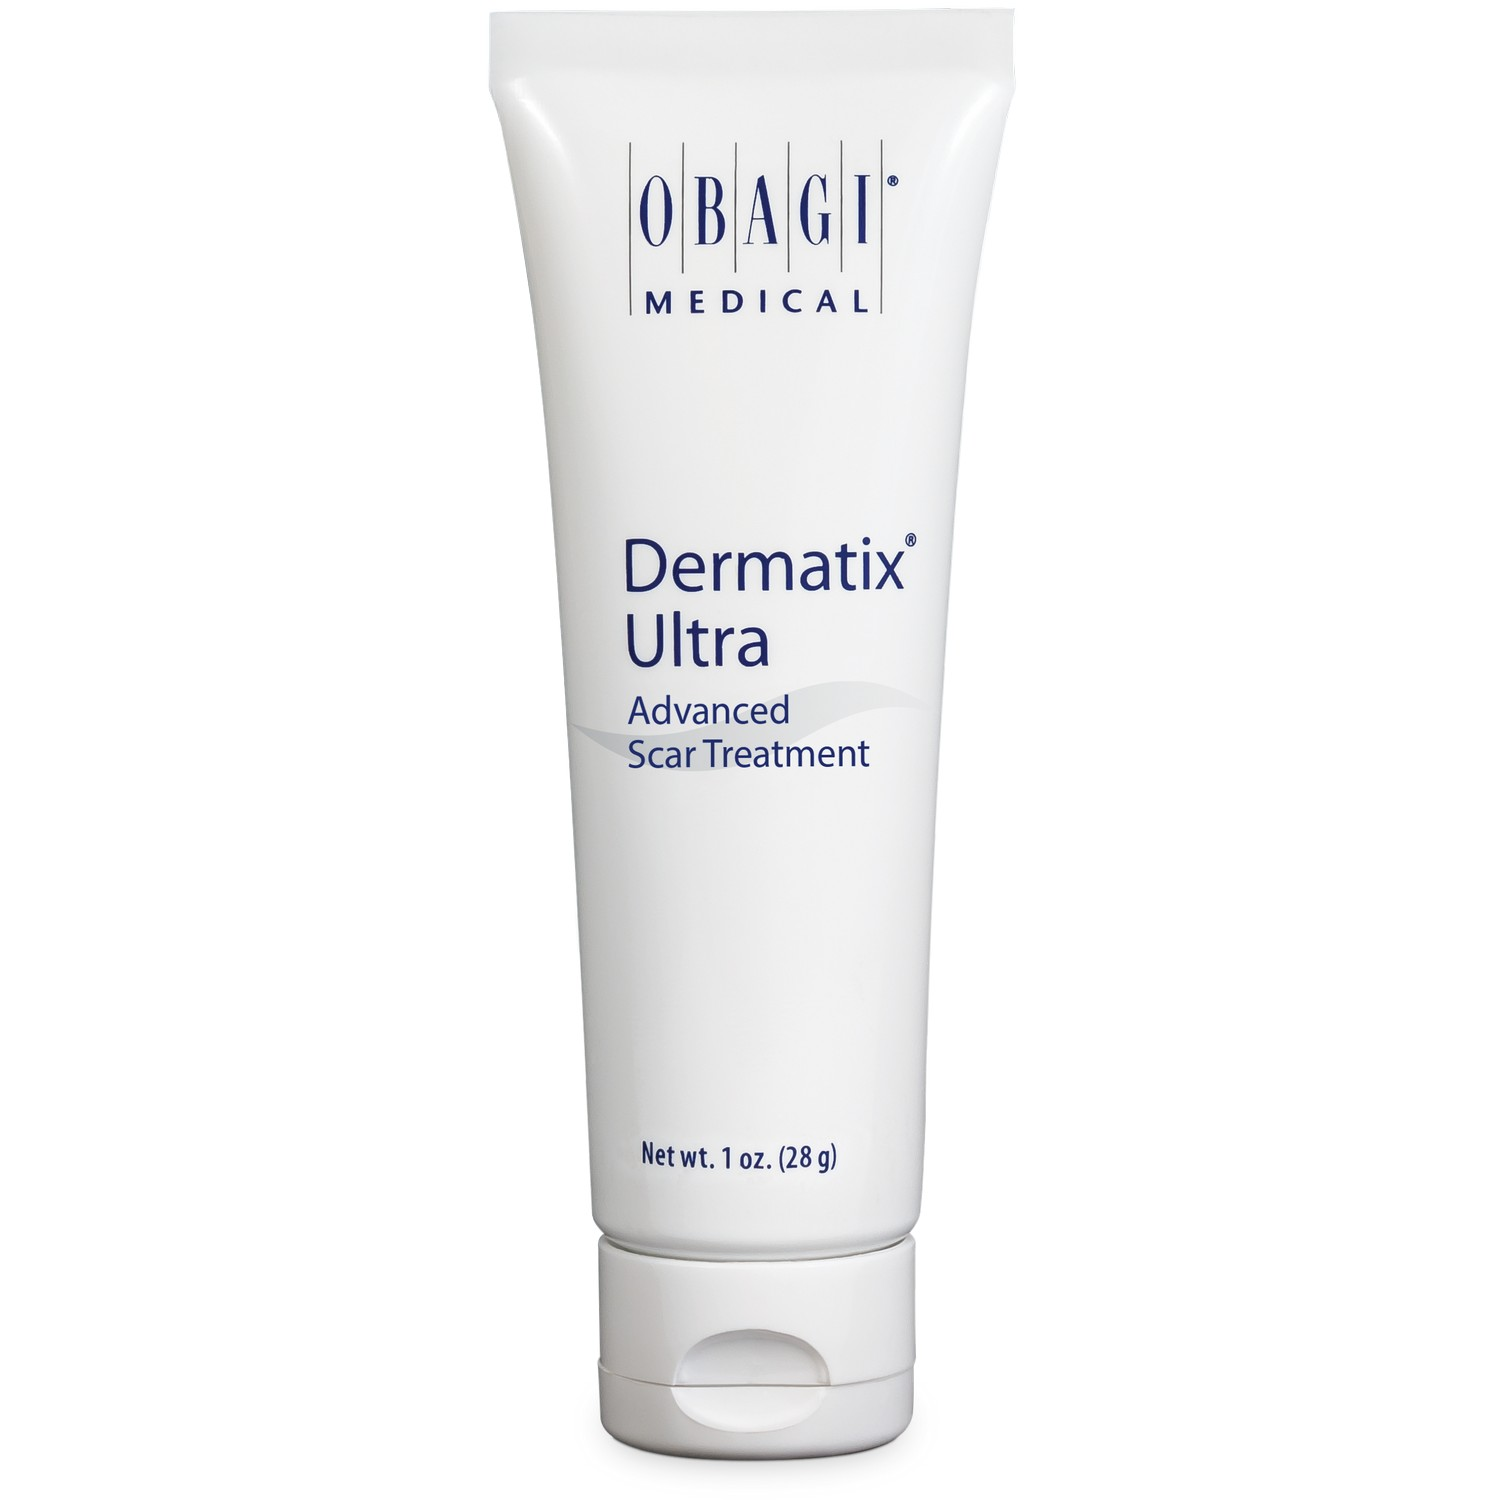 Dermatix Ultra Obagi Dermatix Ultra Advanced Scar Treatment (1 oz / 28 g)